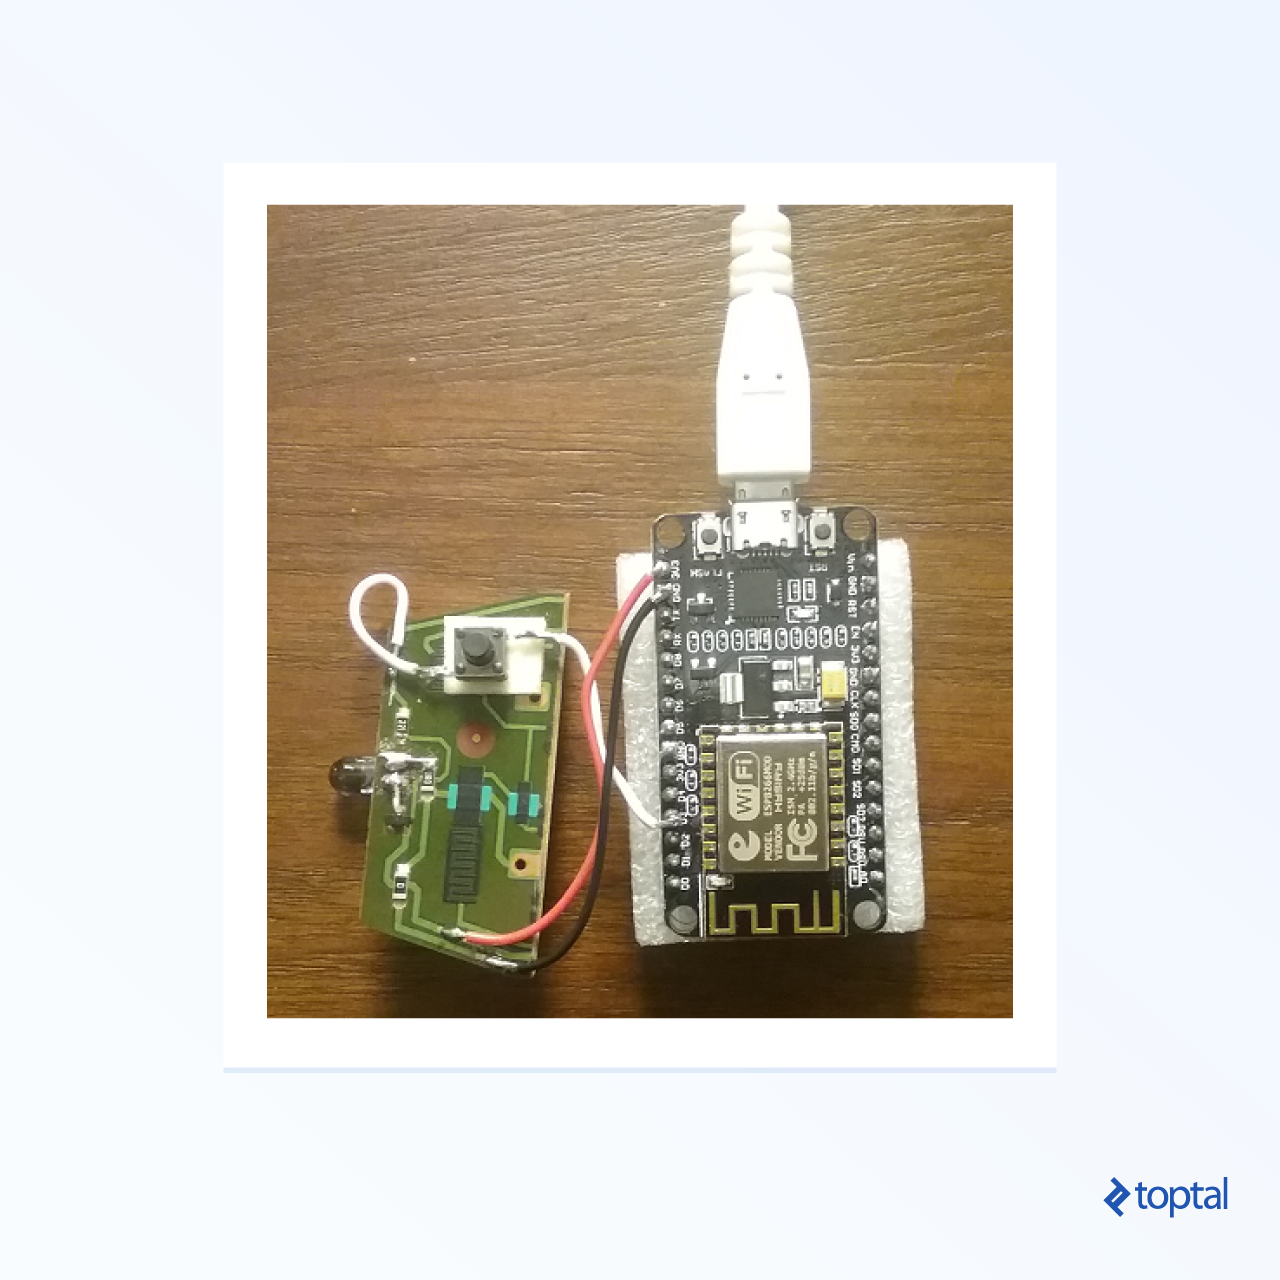 Photograph of ESP8266 with IR diode attached